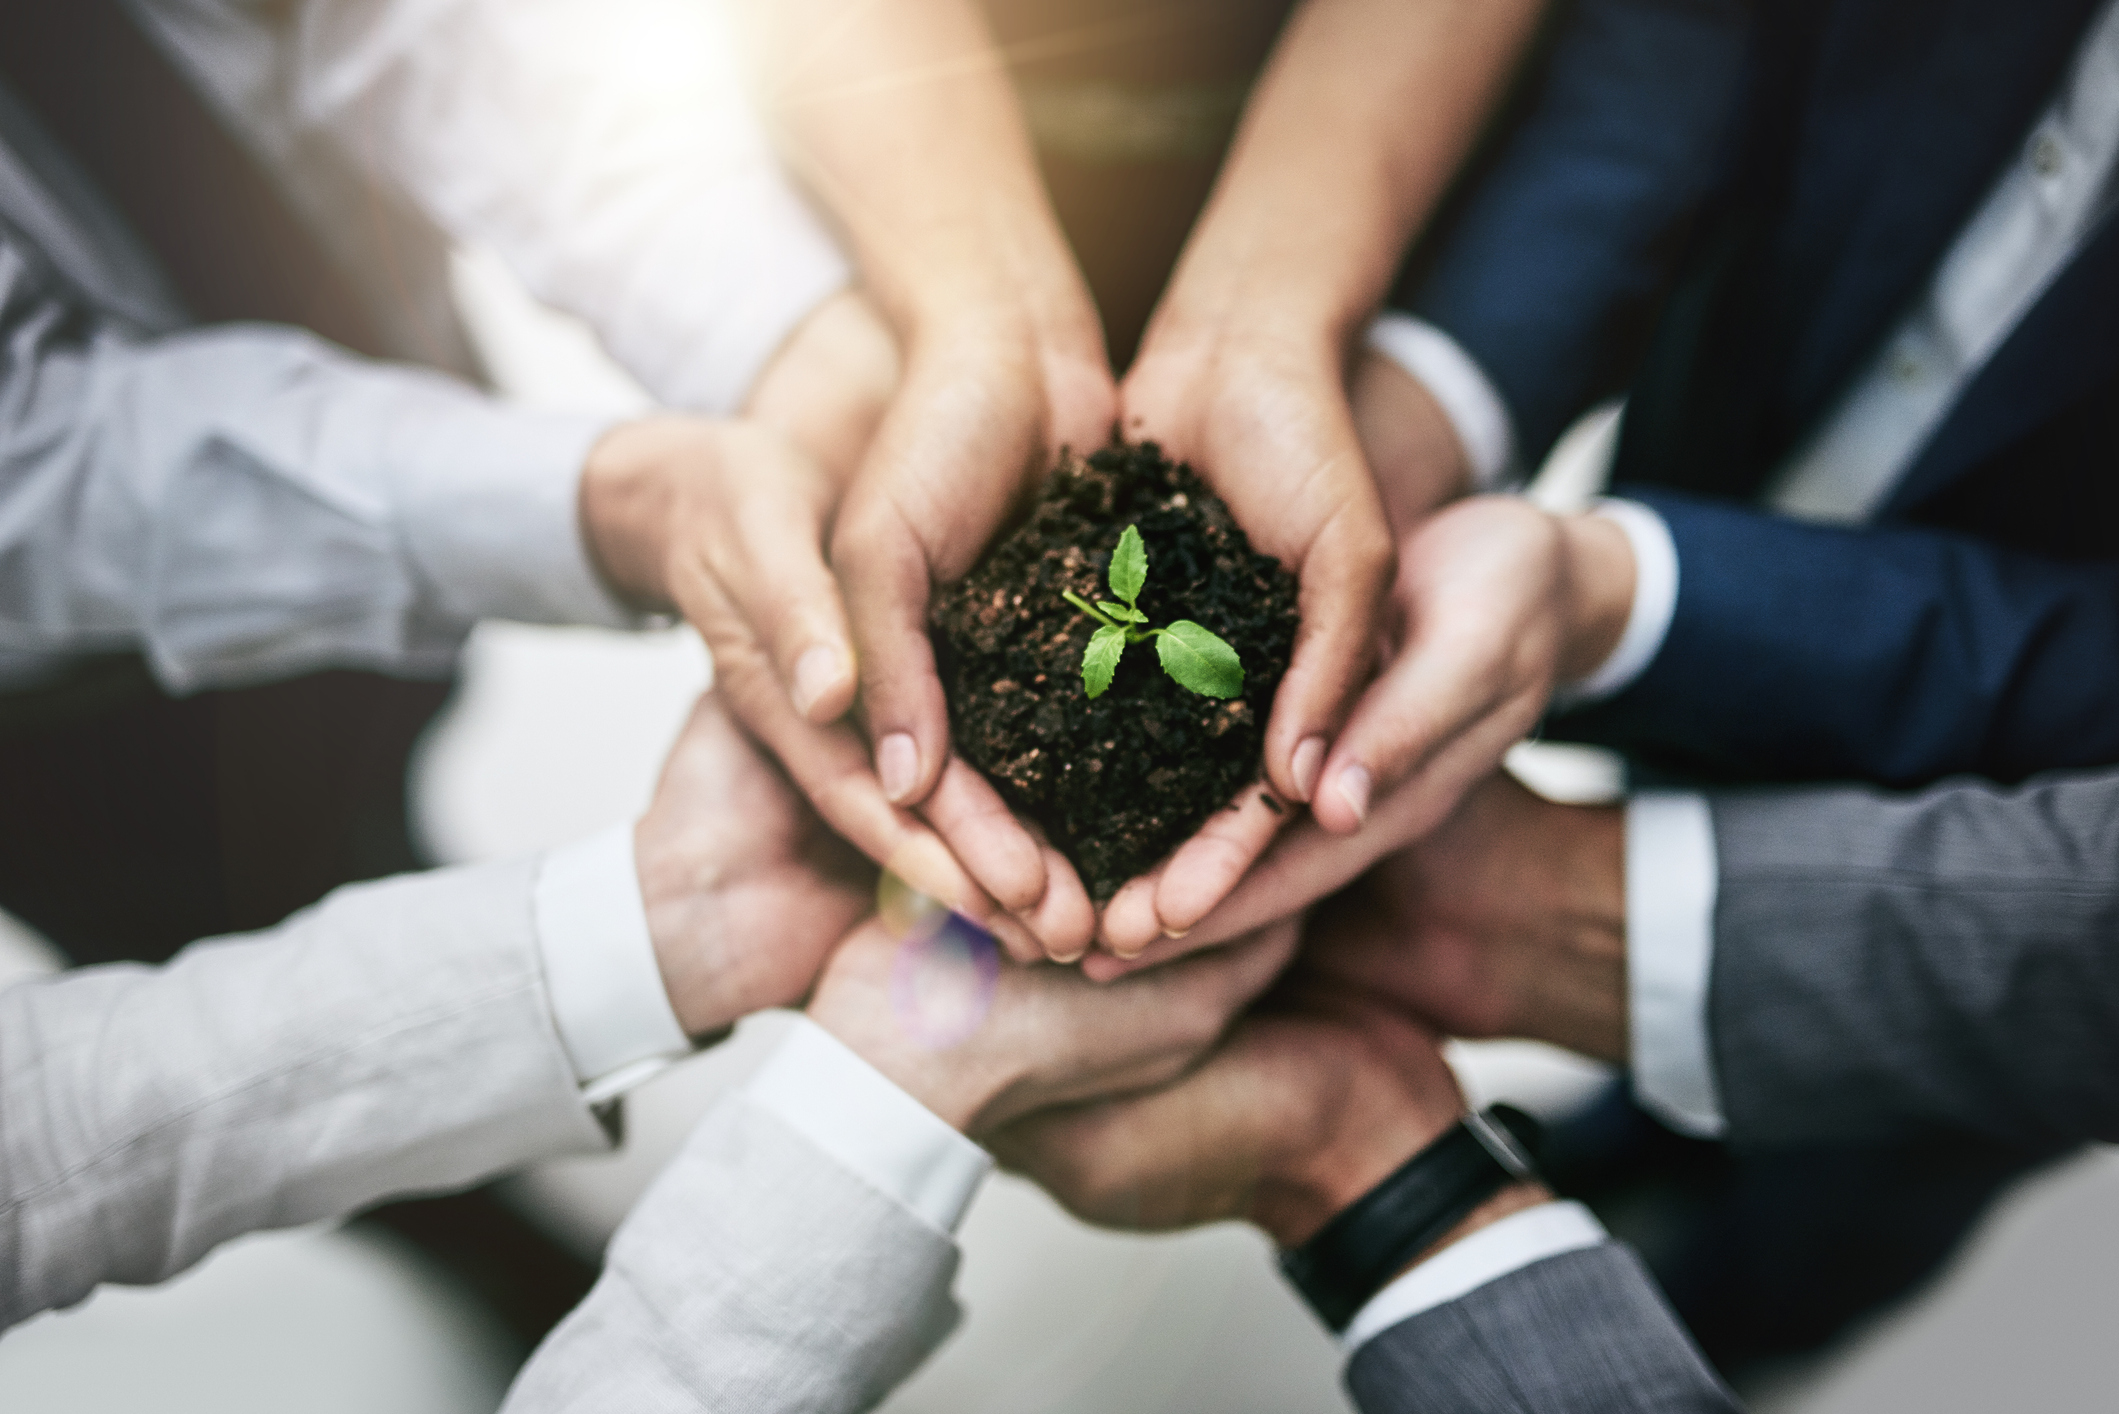 Event professionals holding there hands in a circle with dirt in the middle to showcase sustainability in the event industry